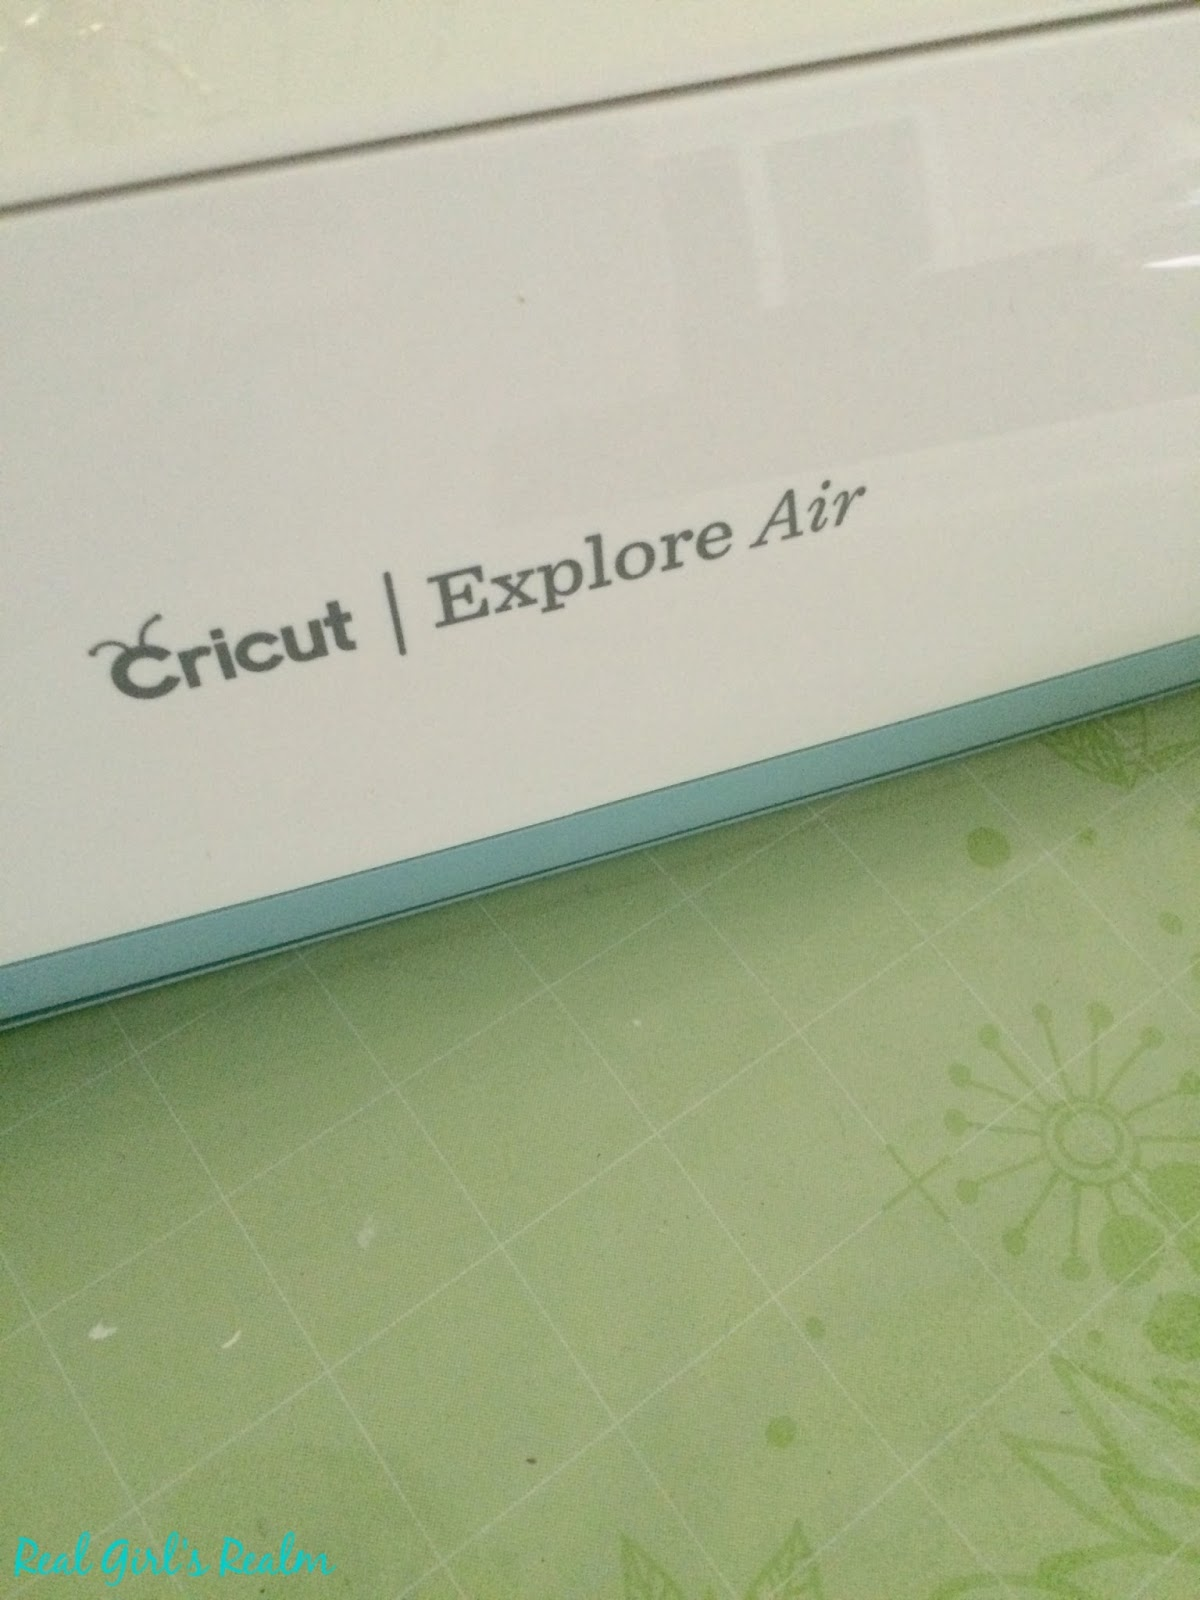 Real Girl's Realm: My First Time Using a Cricut Explore Air